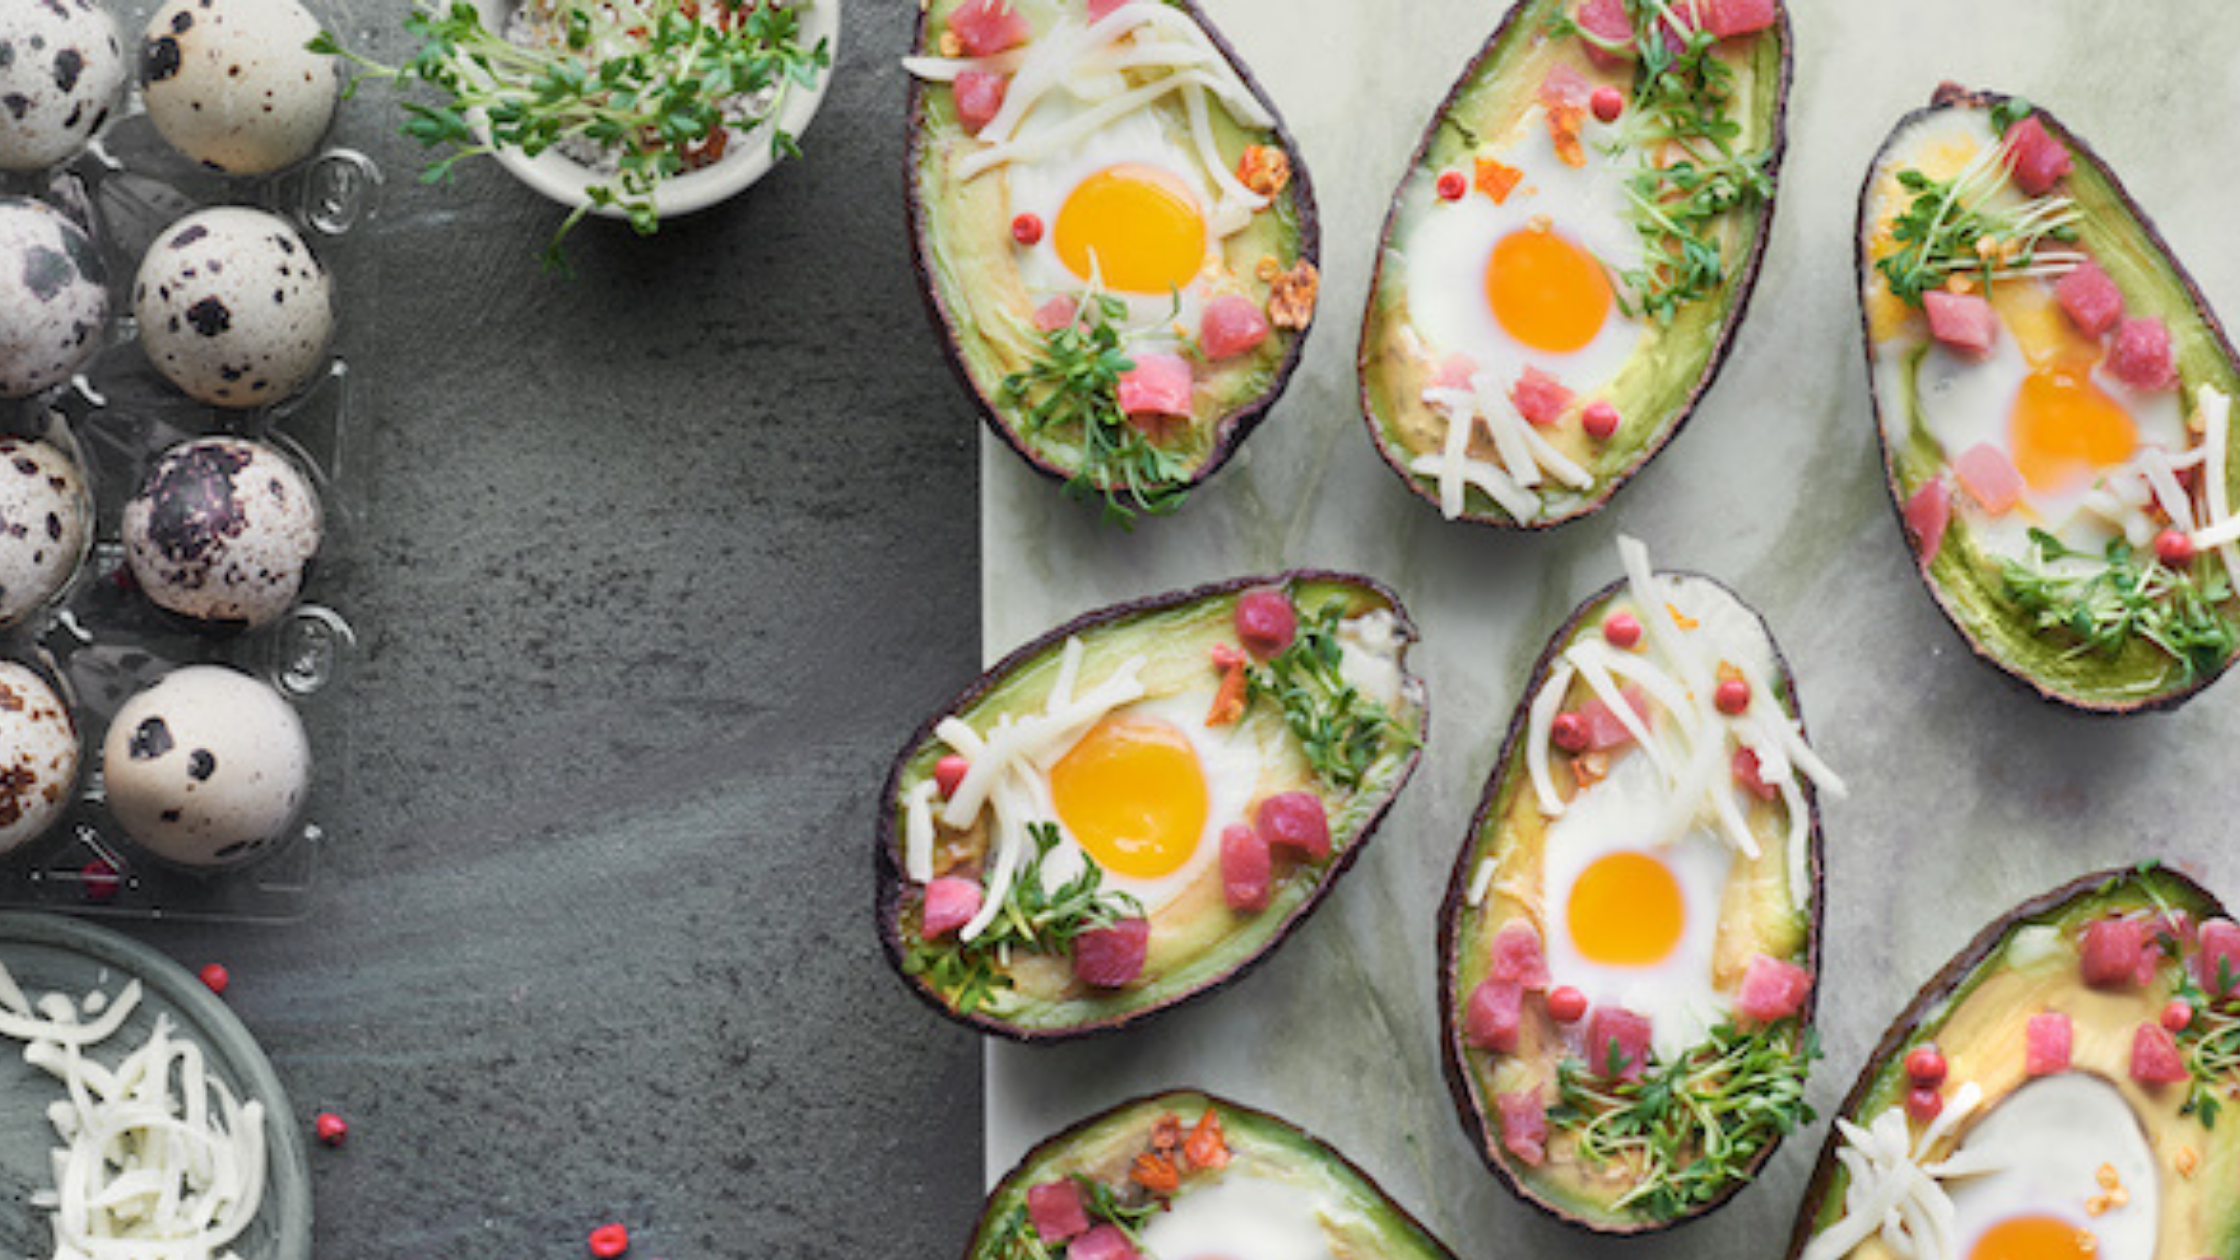 Lose weight in a relaxed way: This is the lazy keto diet